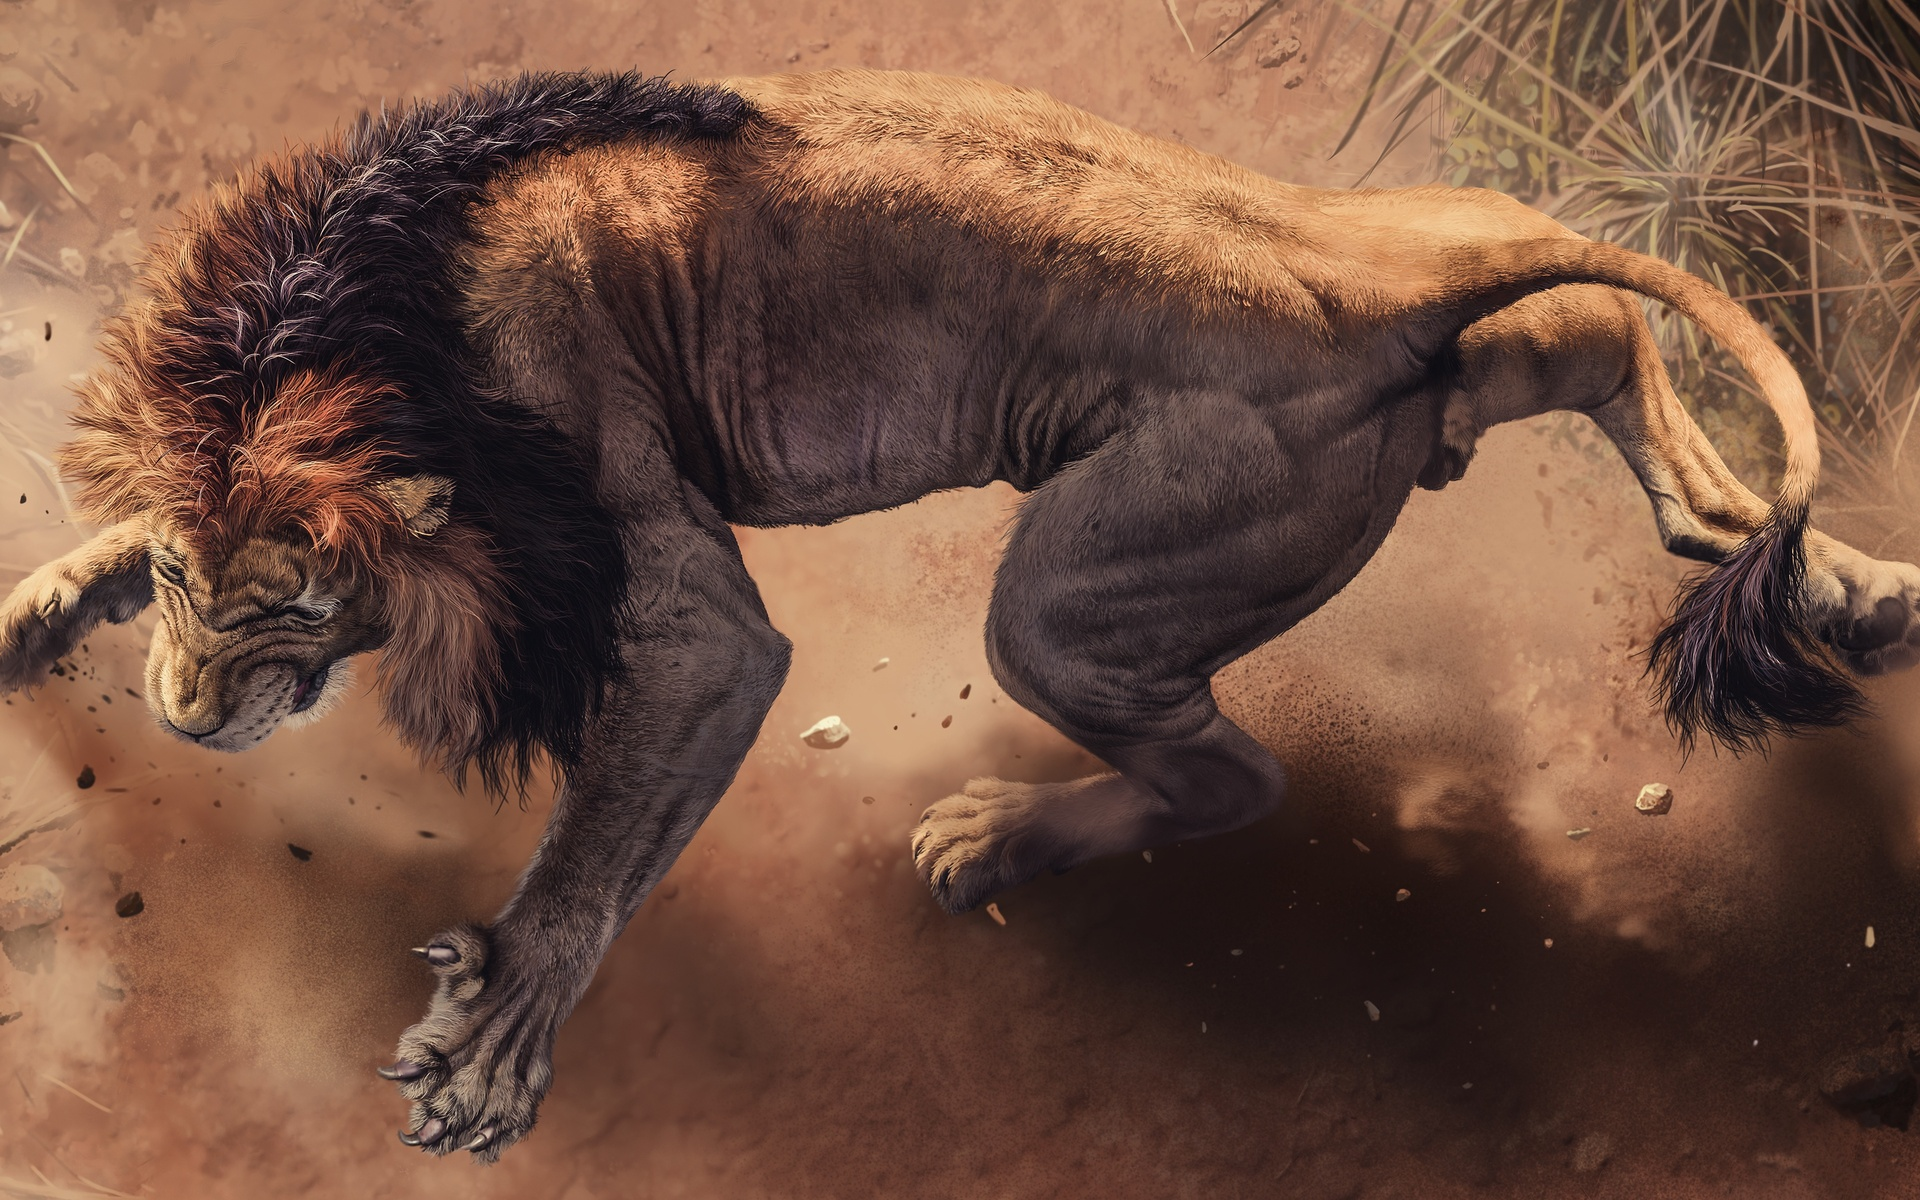 1920x1200 Angry Lion 1080p Resolution Hd 4k Wallpapers